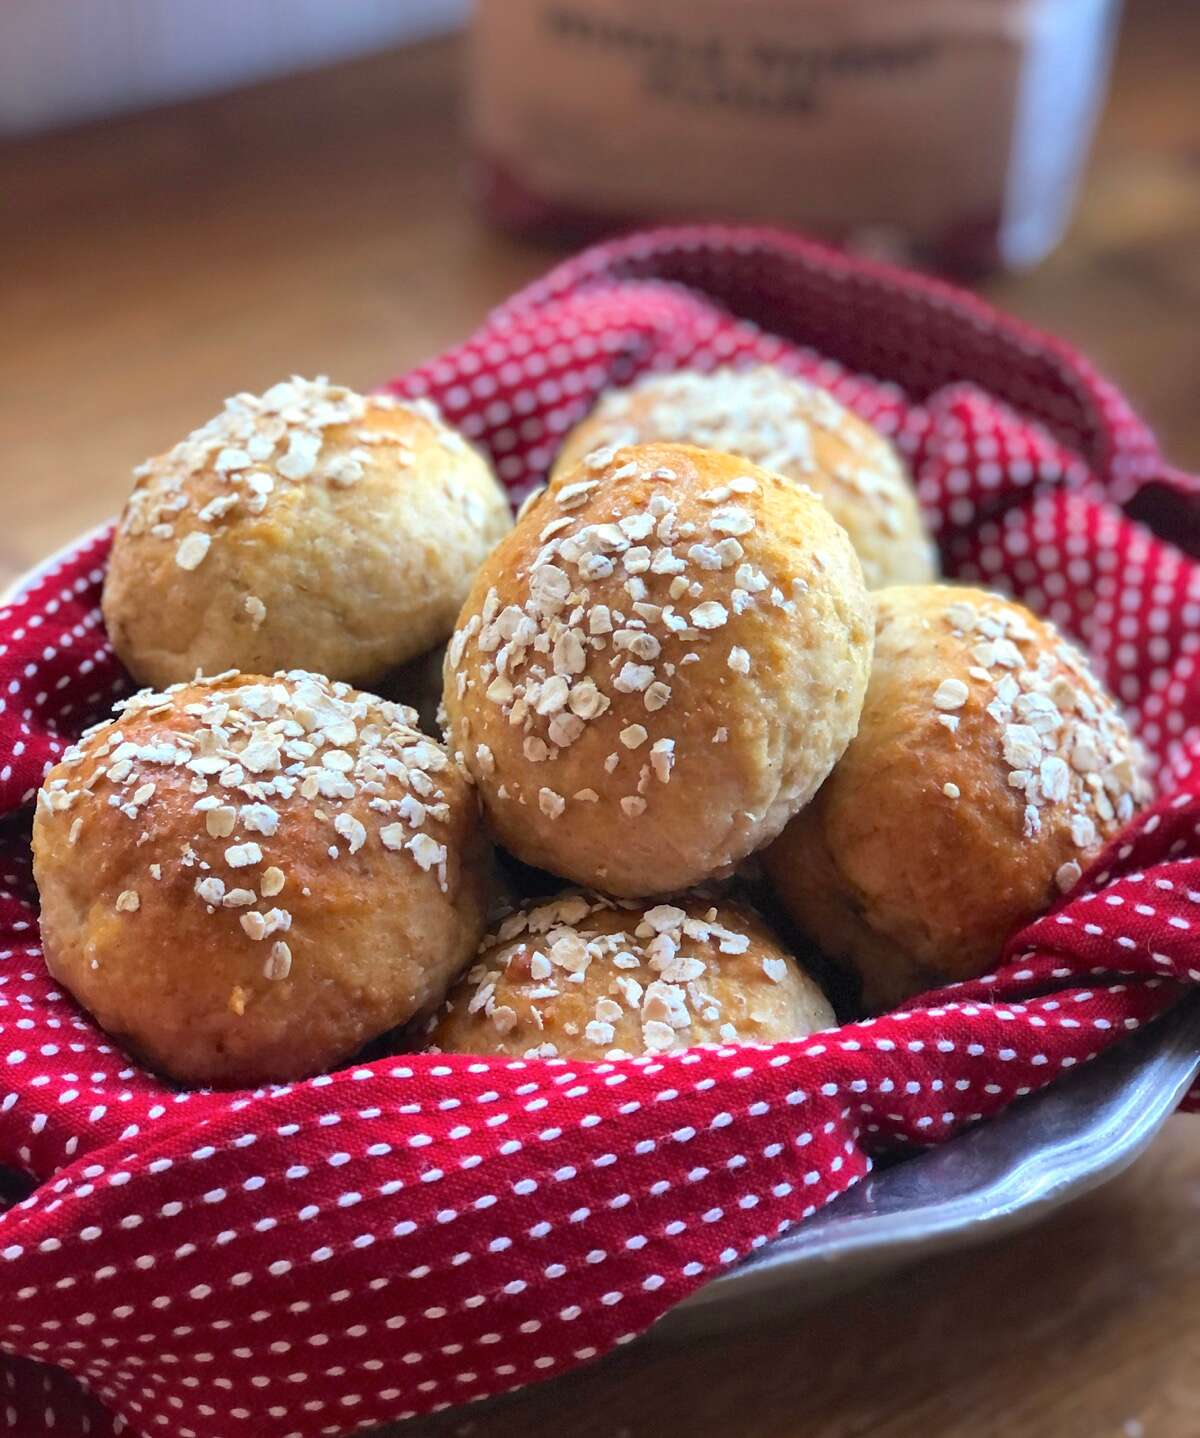 Whole grain dinner rolls in a bowl lined with a red towel